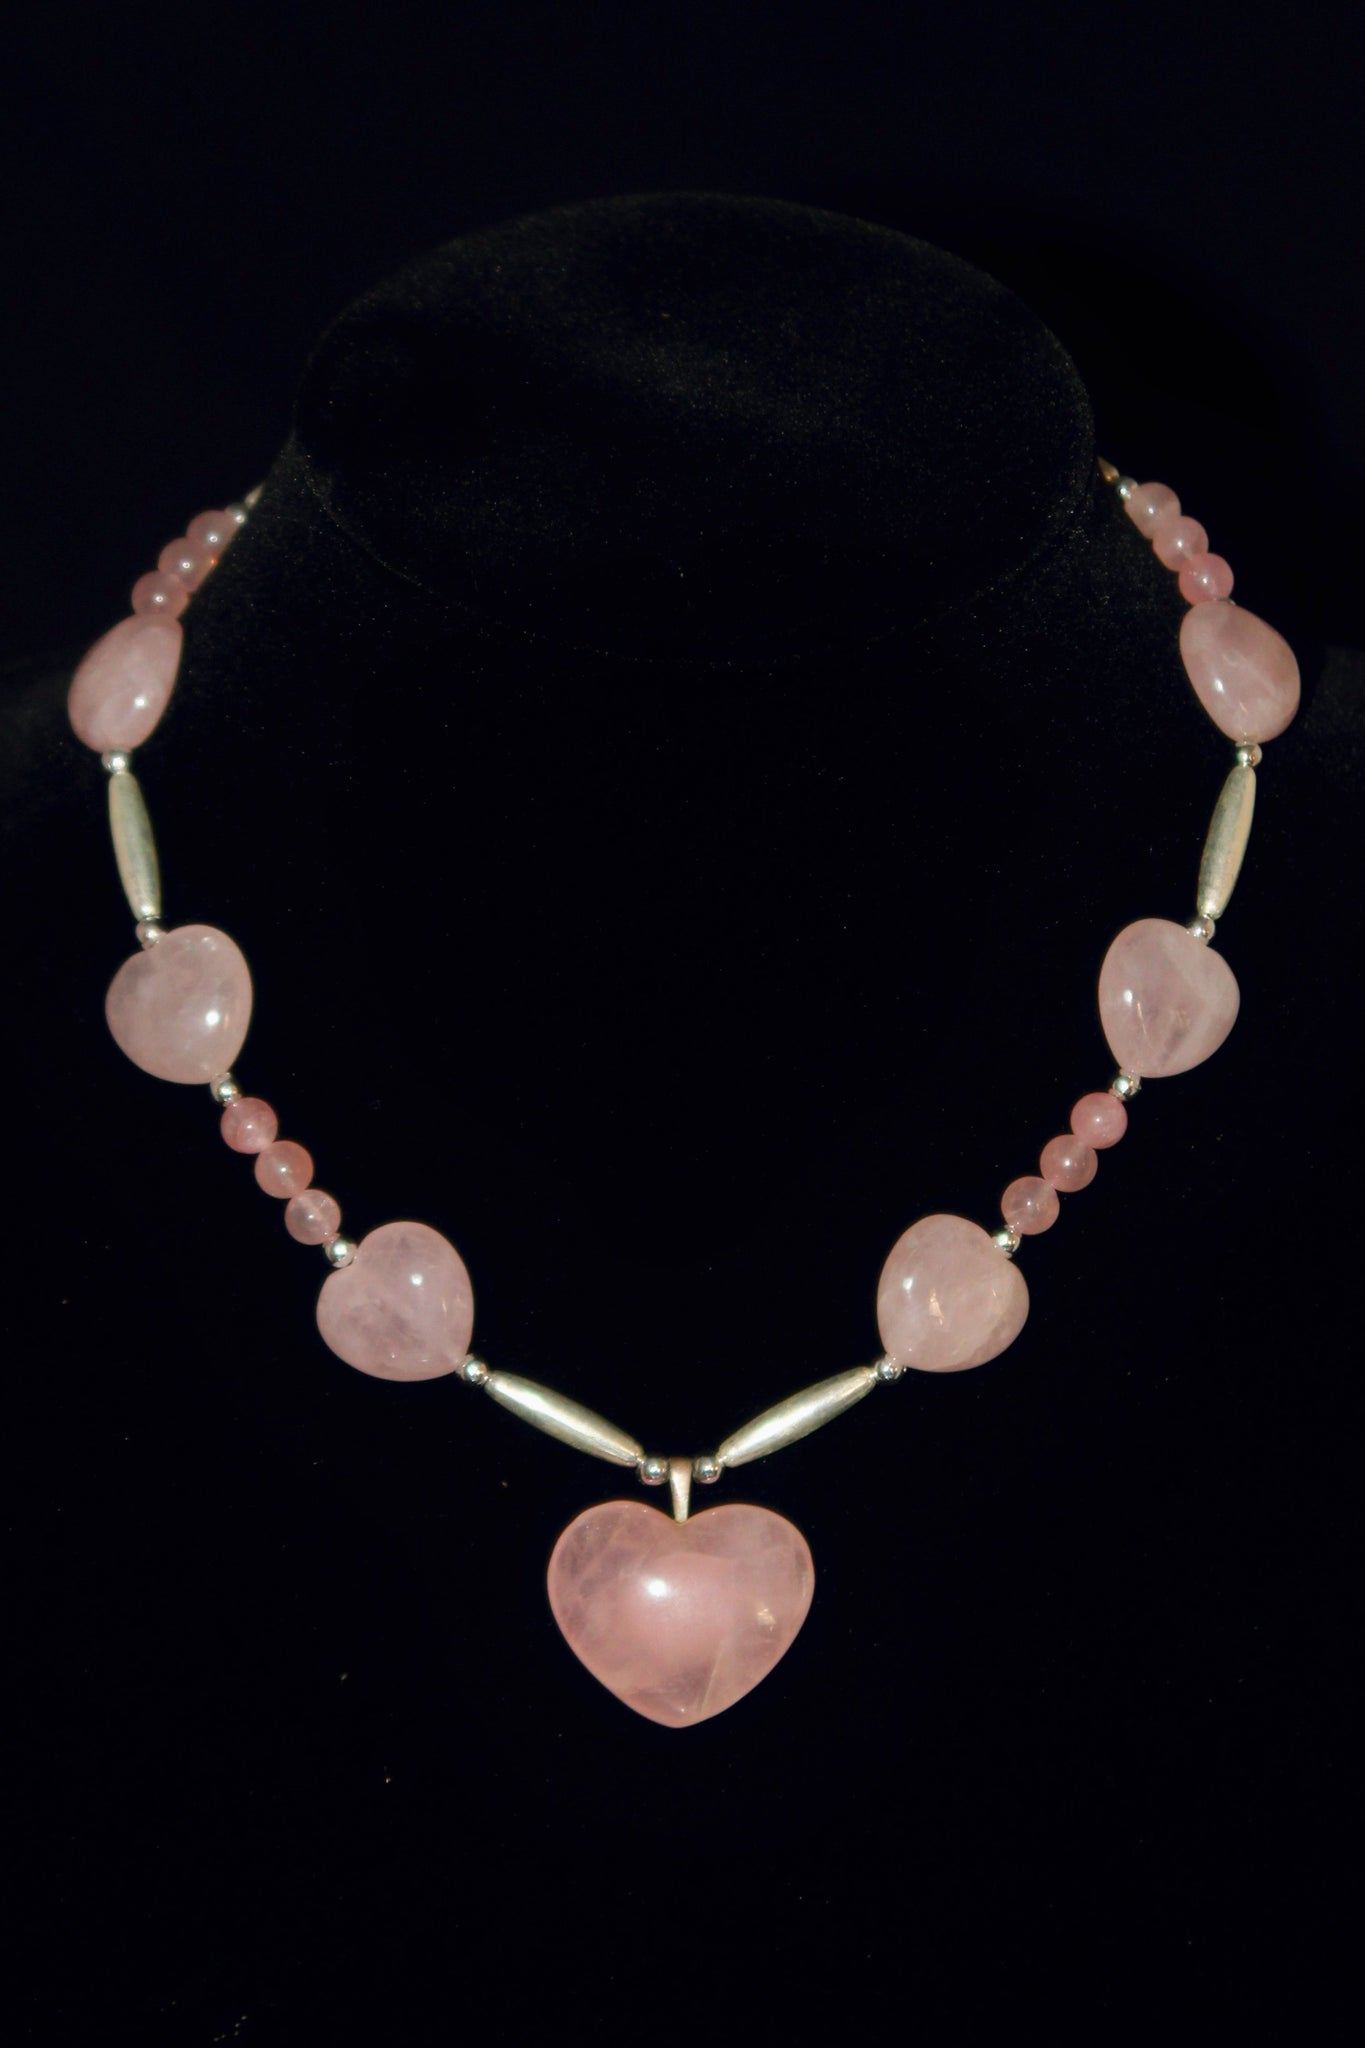 Rose Quartz Heart Necklace - Native Nation Arts & Crafts